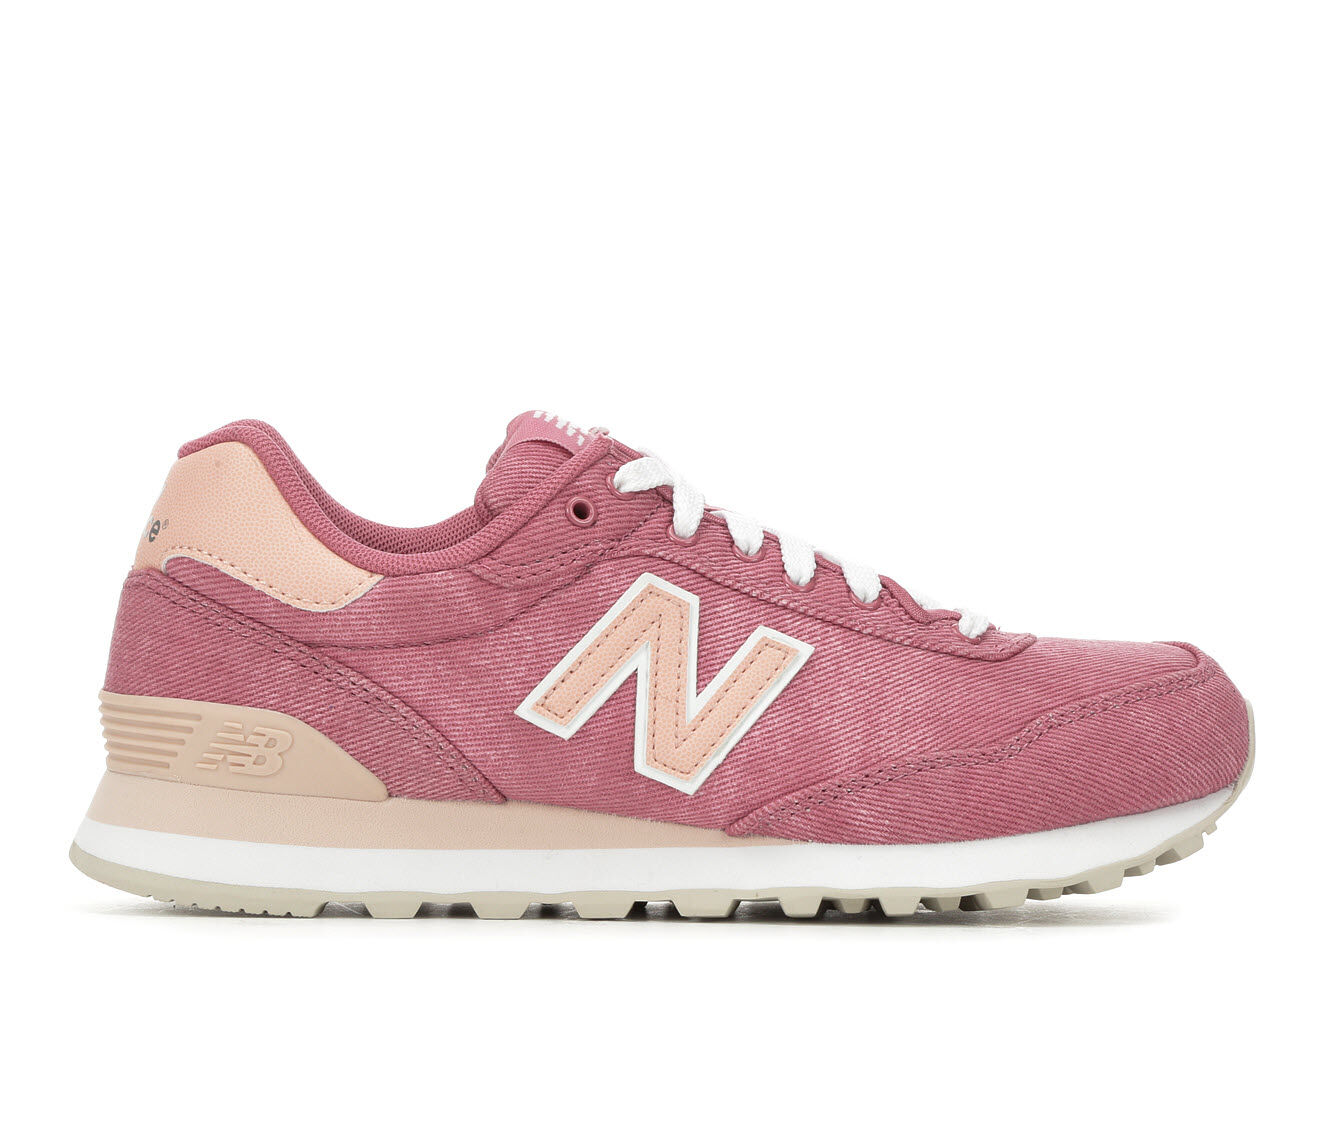 Find Comfortable Women's New Balance WL515 Retro Sneakers Oyster Pnk/Rose